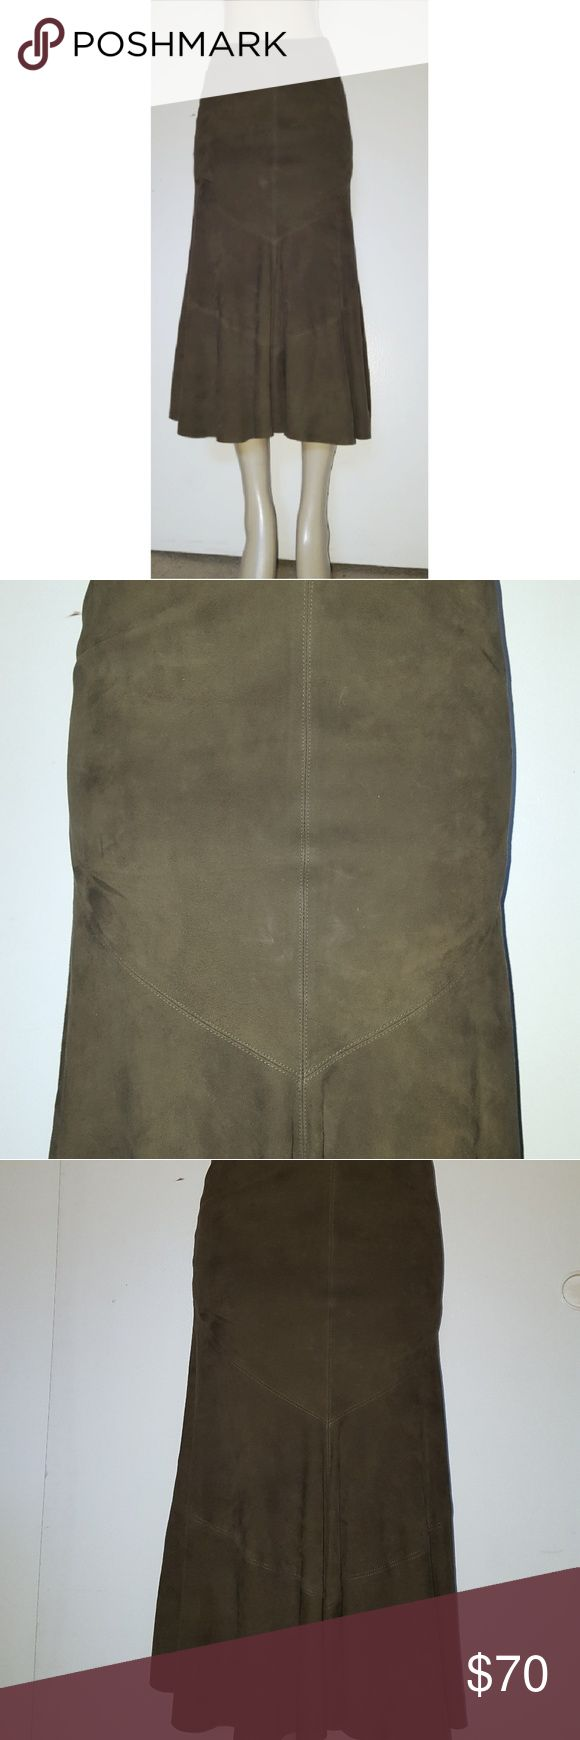 Dana Buchman suede skirt Beautiful skirt, soft suede, fully linned, fitted on the hips. Great used condition, color olive green. Dana Buchman Skirts Maxi